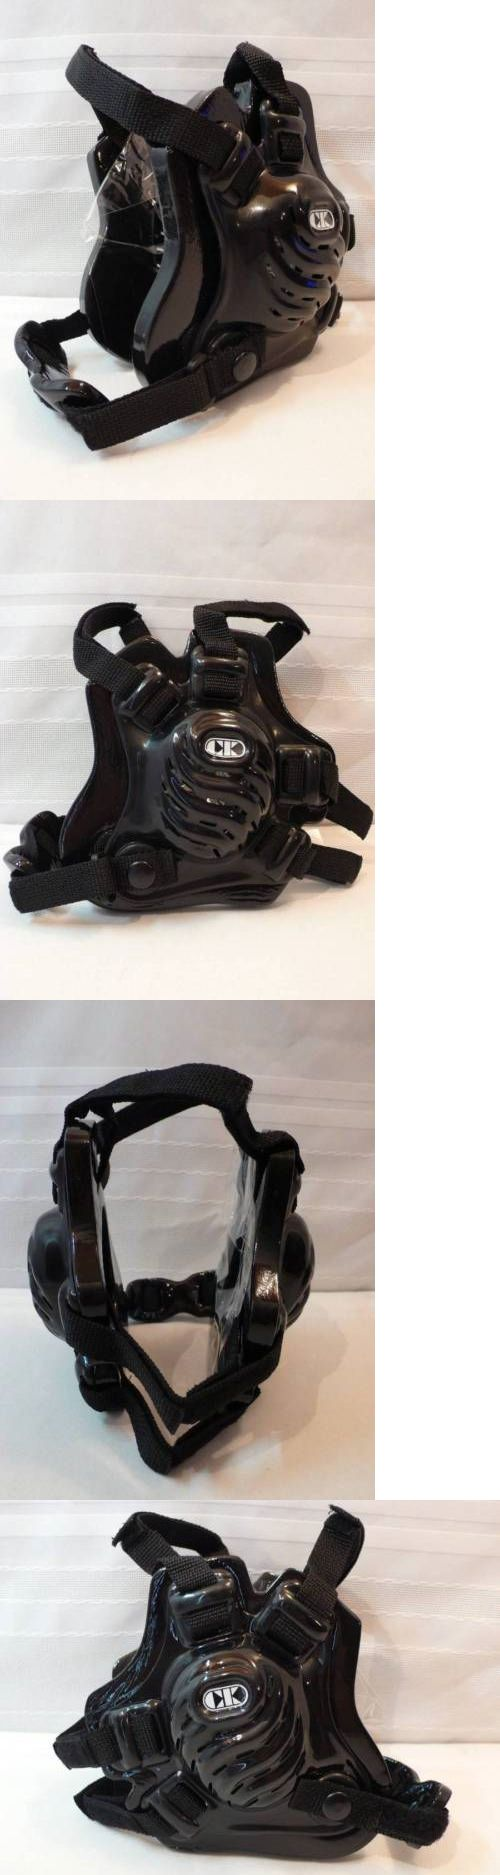 Protective Gear 159174: New Cliff Keen Athletic Tornado Wrestling Headgear Headguard F5 Tripple Black -> BUY IT NOW ONLY: $30 on eBay!